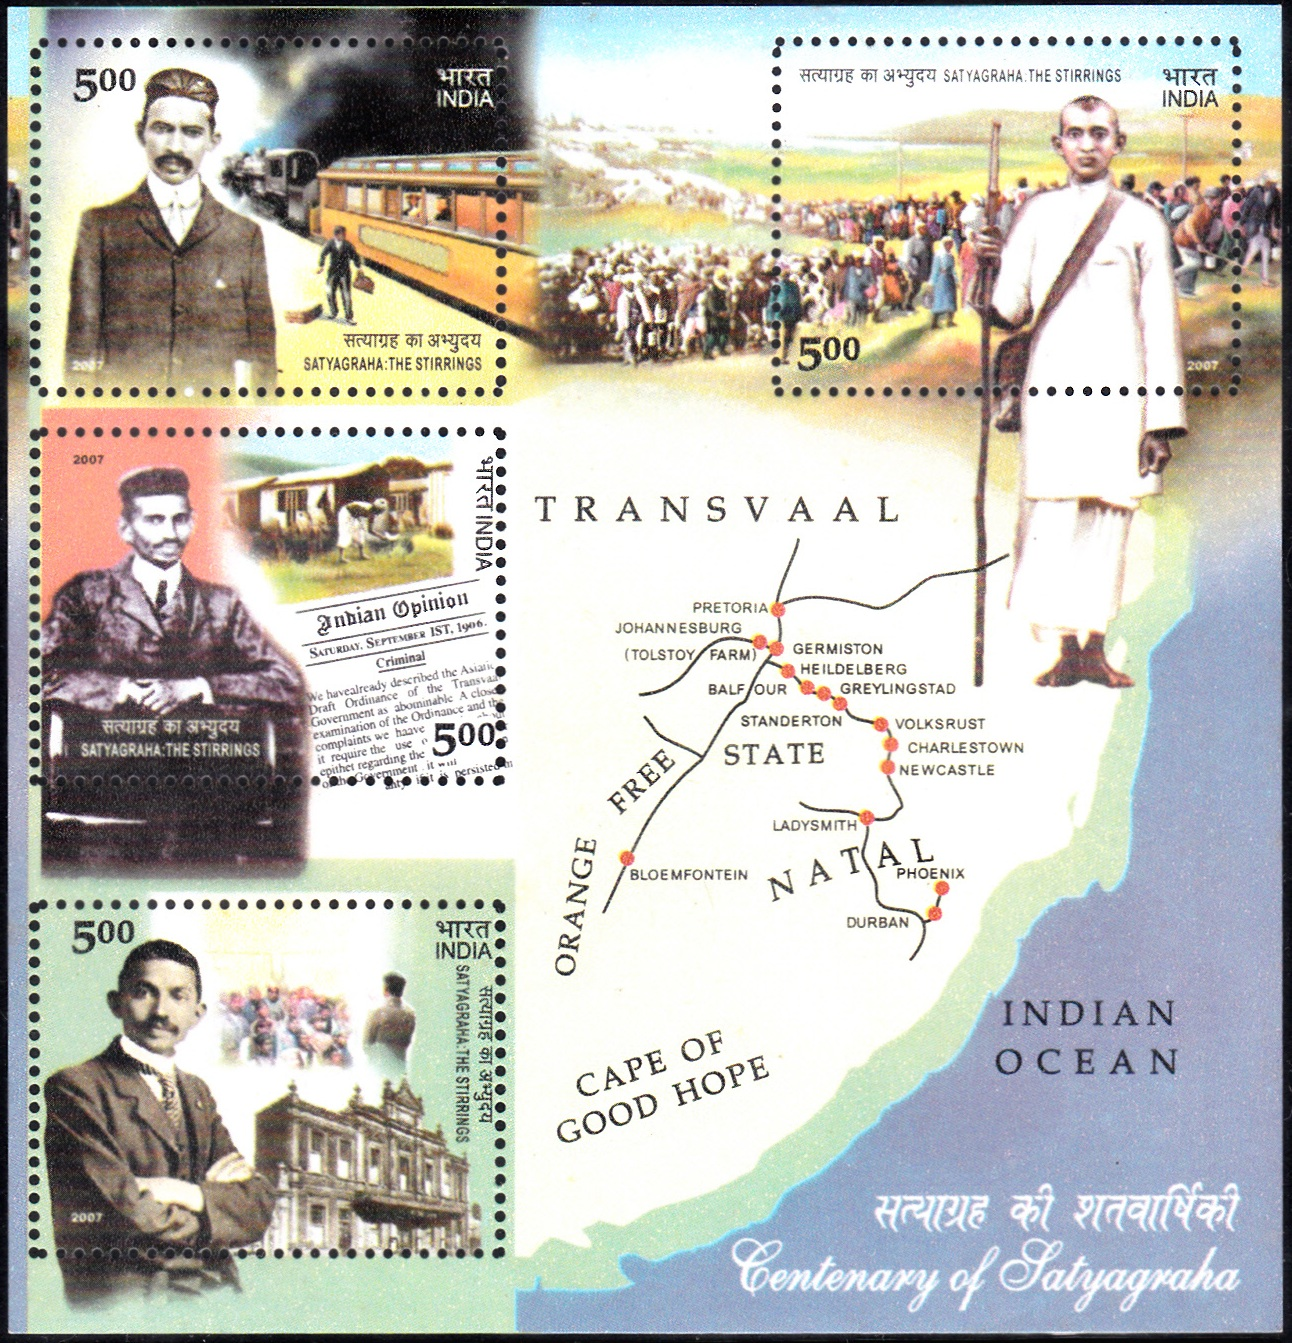 2300 Centenary of Satyagraha [India Miniature Sheet 2007]